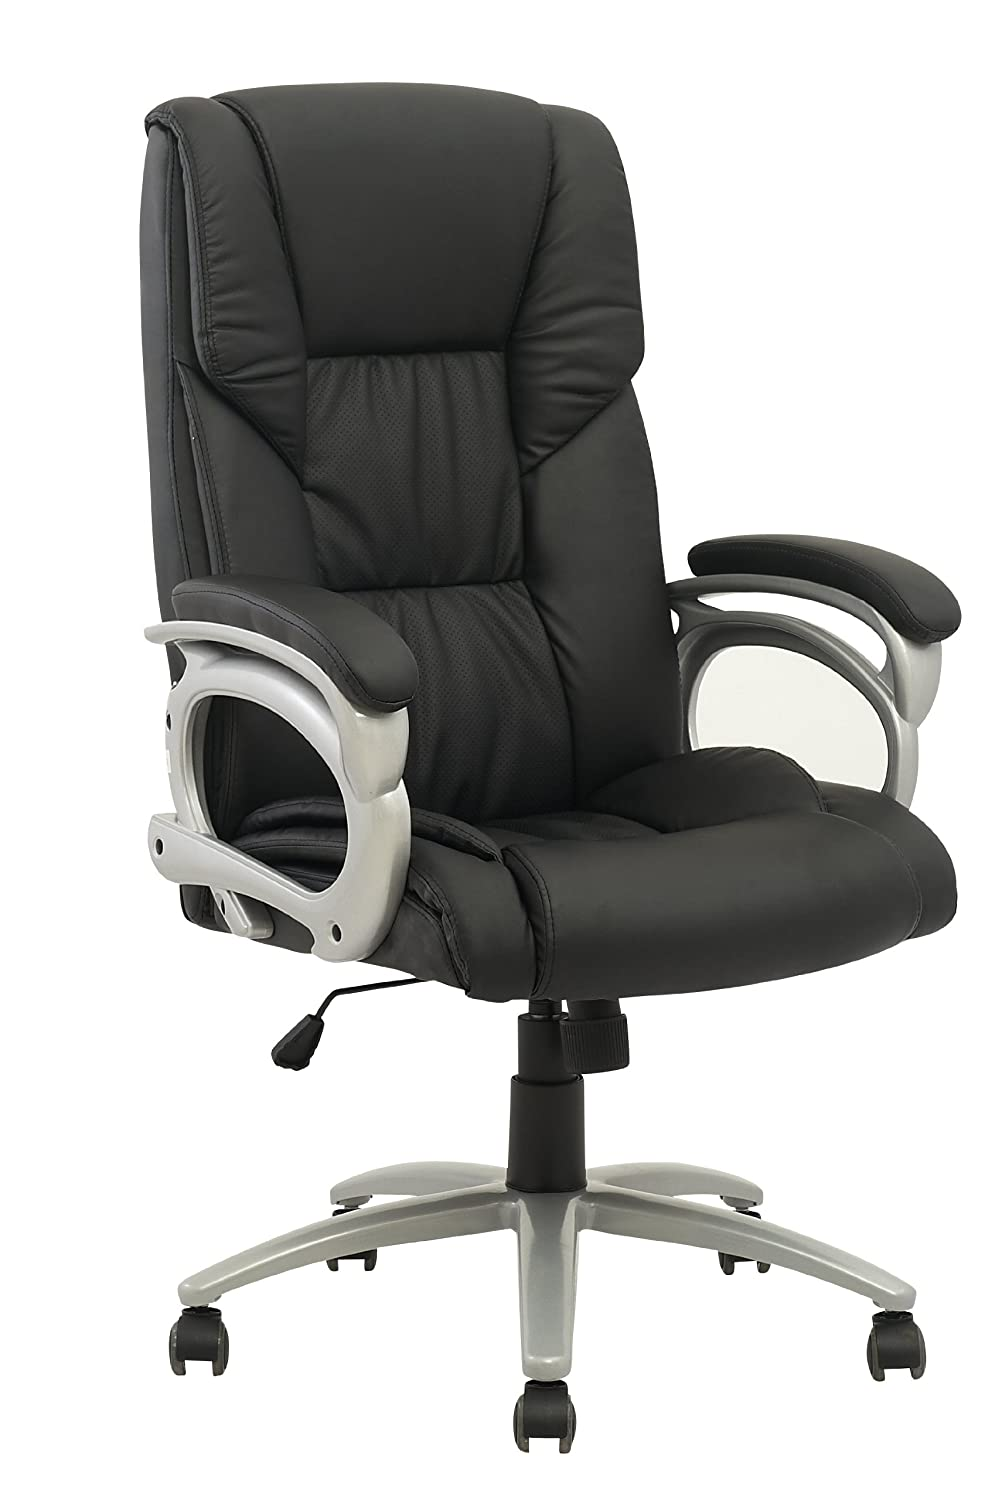 New High Back Executive Leather Ergonomic Office Chair w/Metal Base O15